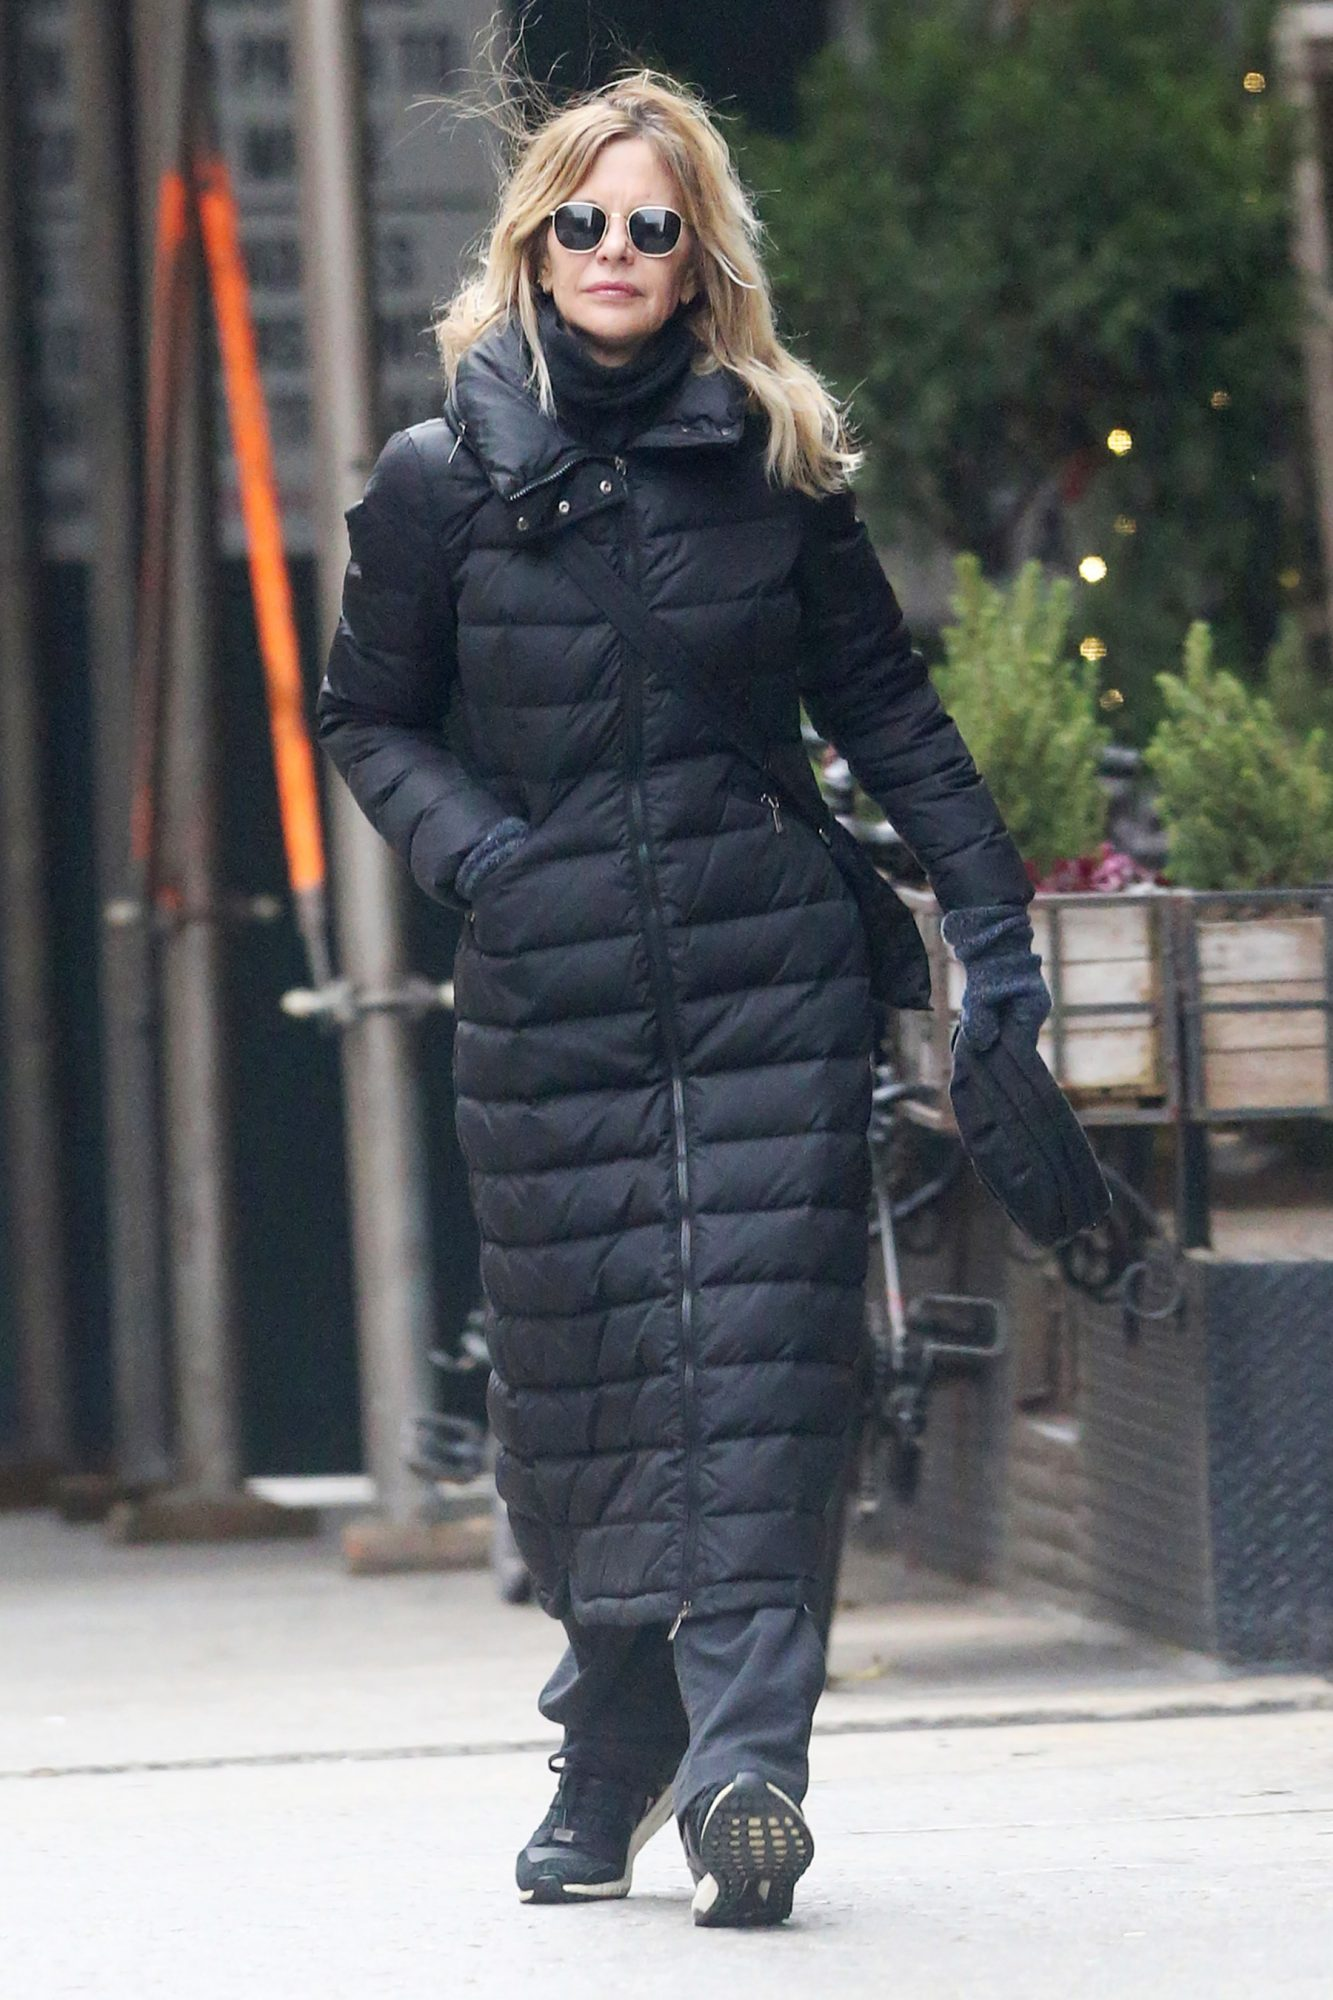 EXCLUSIVE Meg Ryan is Spotted out and about in Tribeca, New York City.